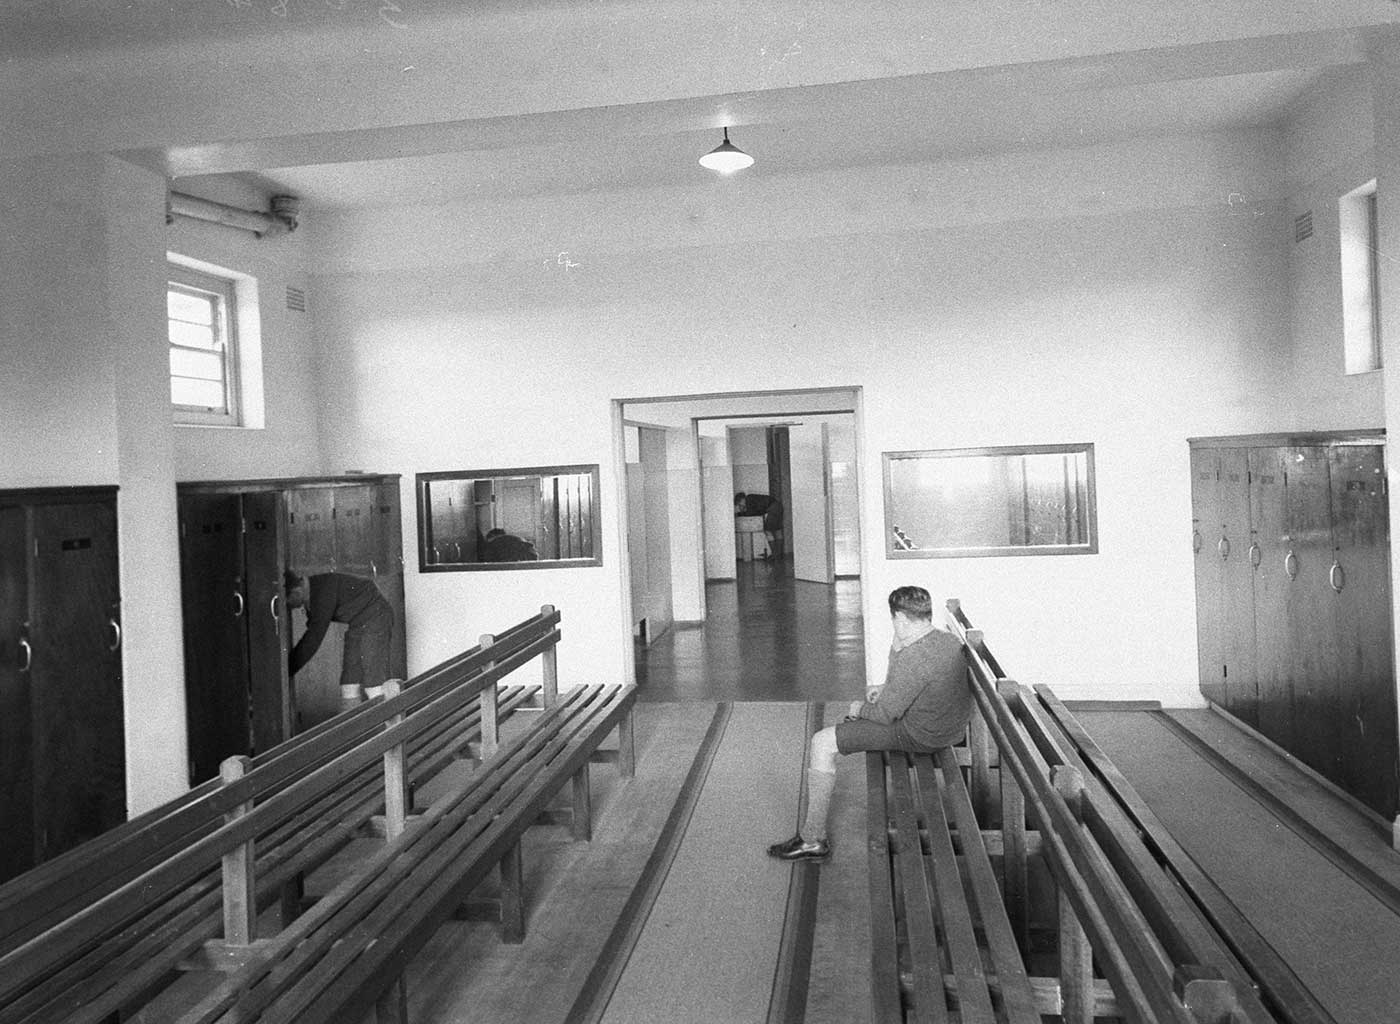 Black and white photo showing a room with wooden lockers lining the walls and two sets of long wooden benches at the centre. A boy in school uniform sits with his back to the camera, tying a shoelace, another boy leans into a locker and, at the far end of the room, a third boy leans over a sink.